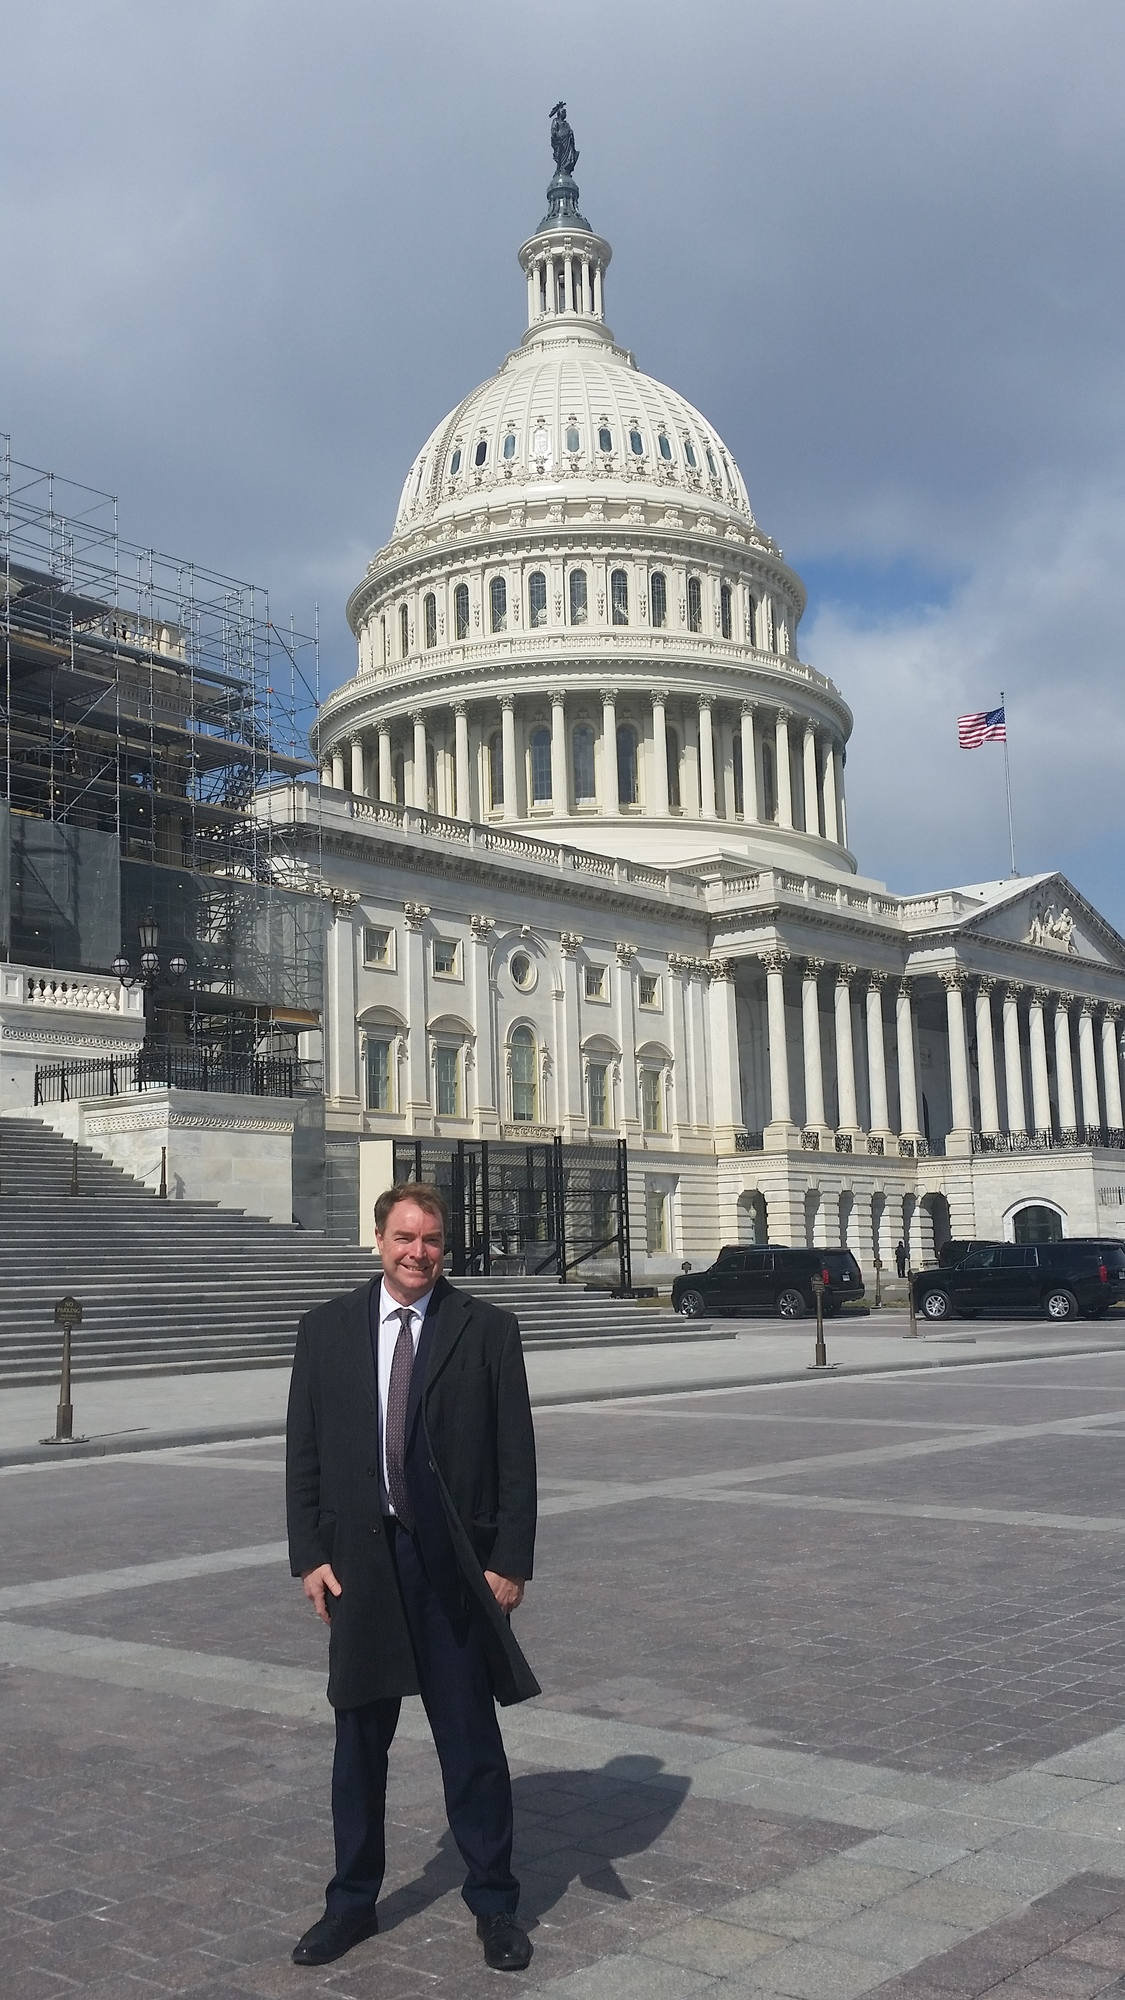 Supervisor Connolly in Washingon D.C. standing in front of the Capital.